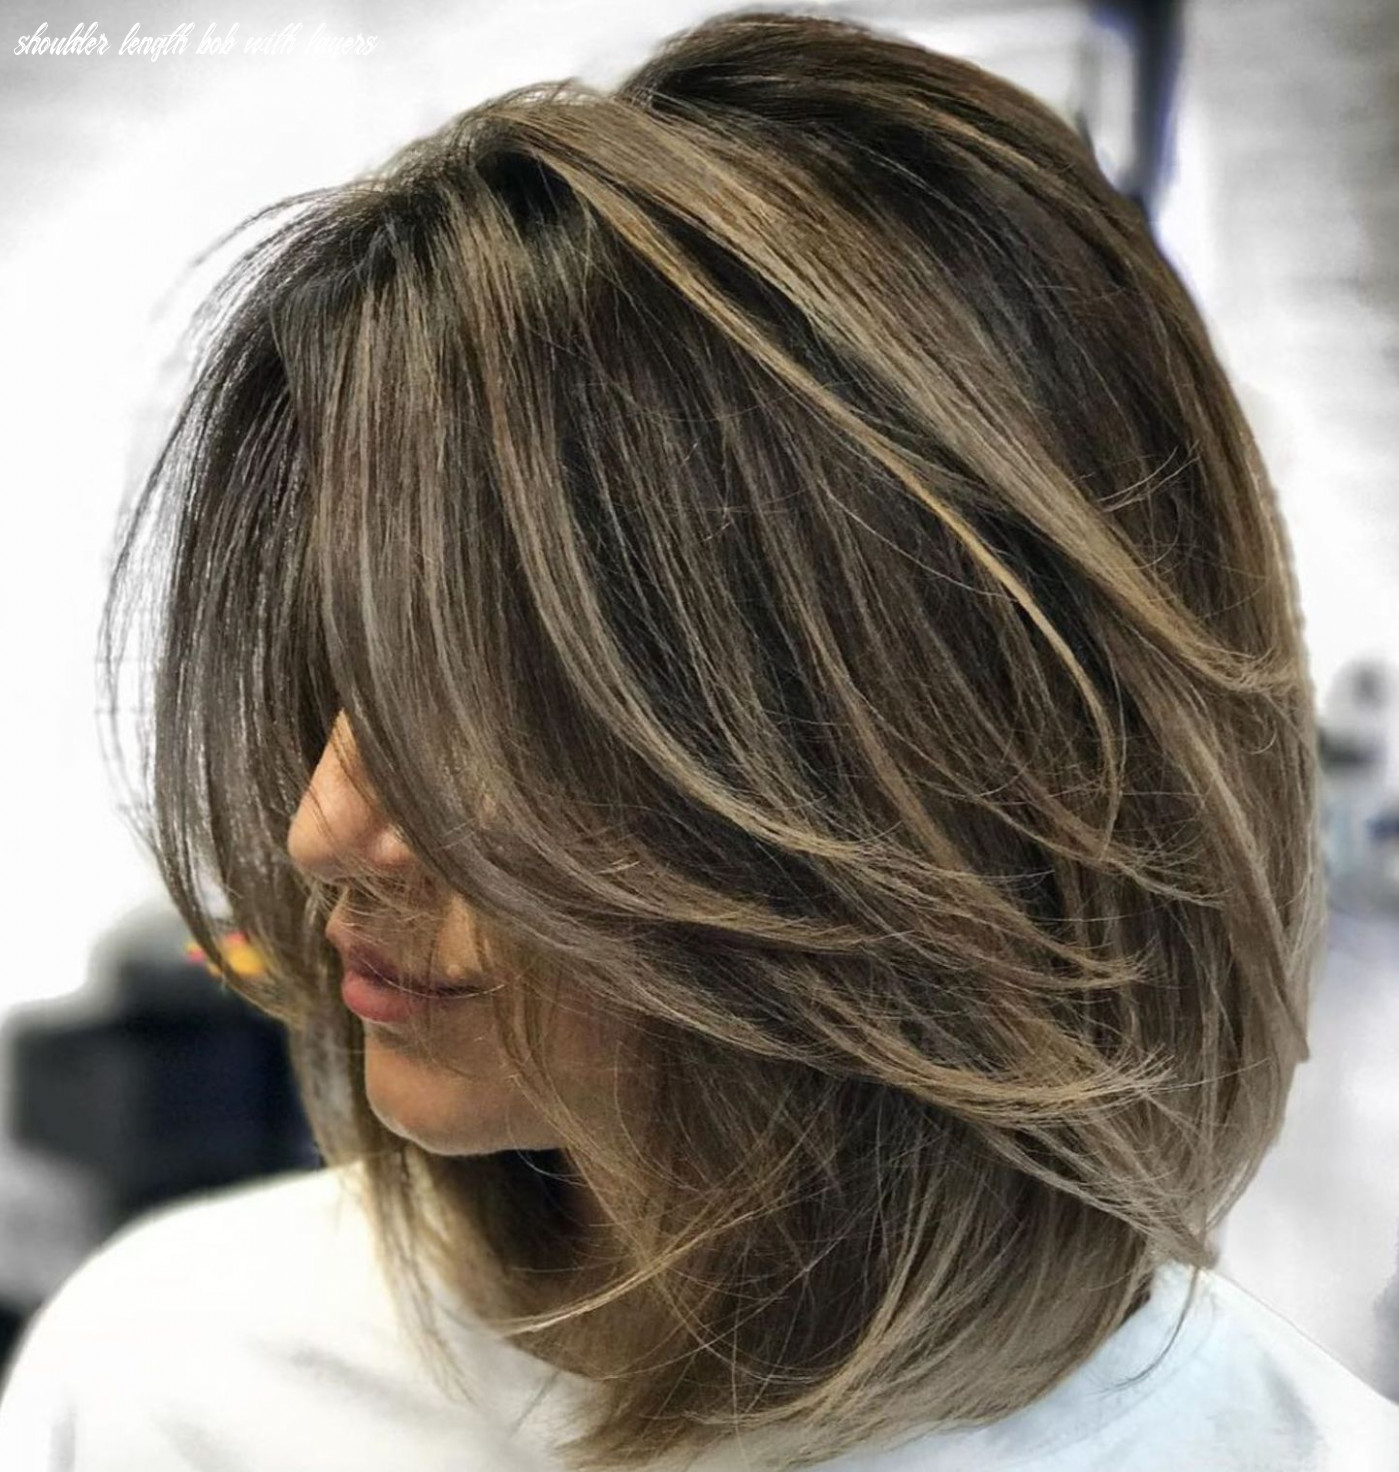 Pin on cabelos shoulder length bob with layers